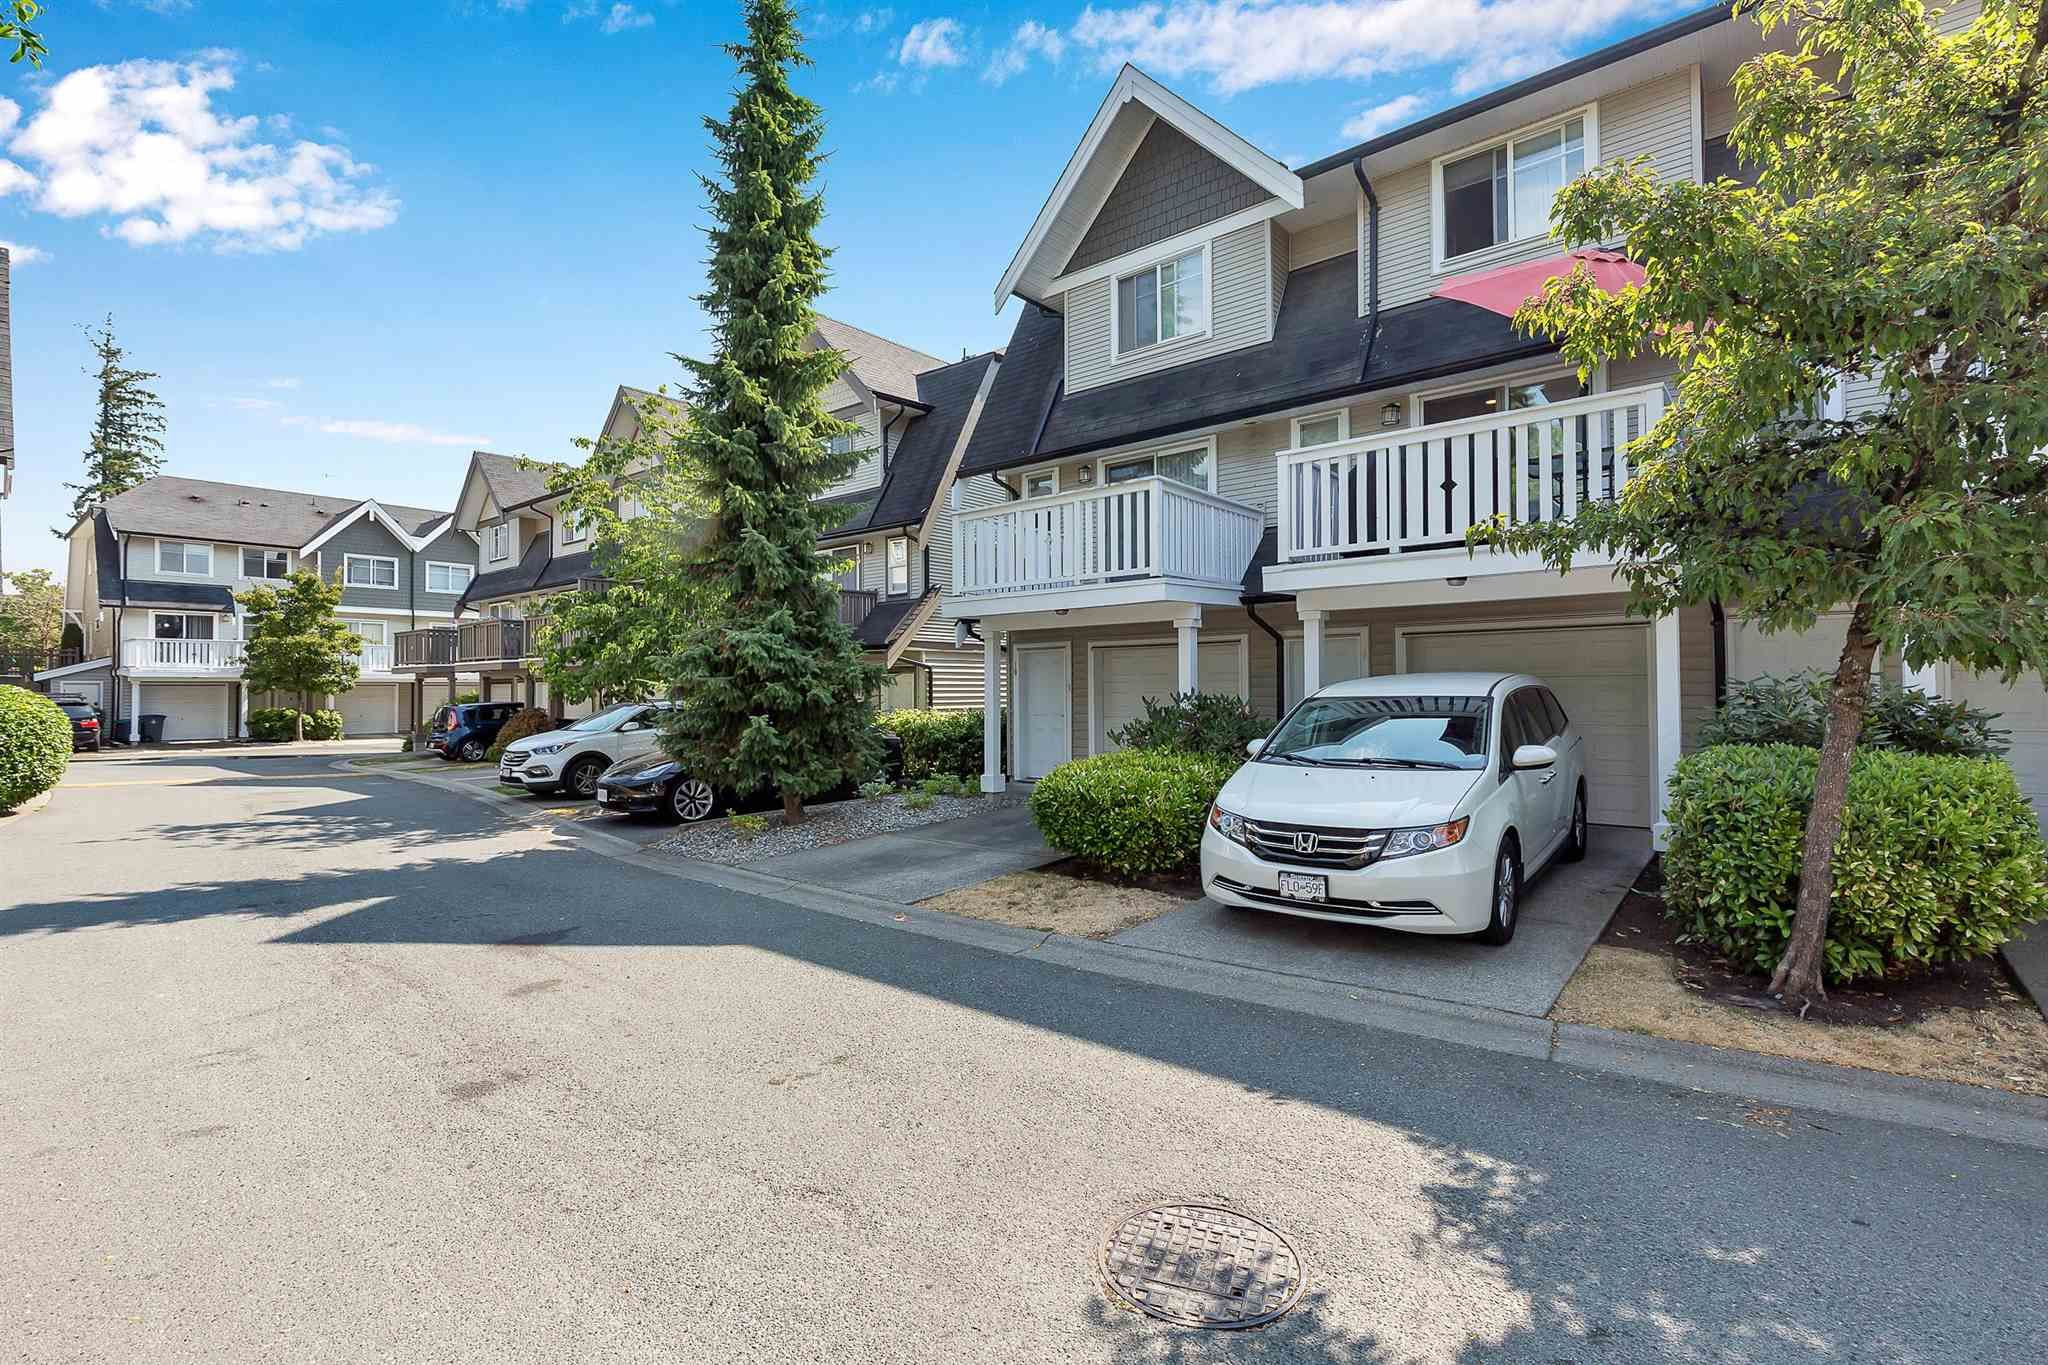 """Photo 30: Photos: 9 15871 85 Avenue in Surrey: Fleetwood Tynehead Townhouse for sale in """"Huckleberry"""" : MLS®# R2606668"""